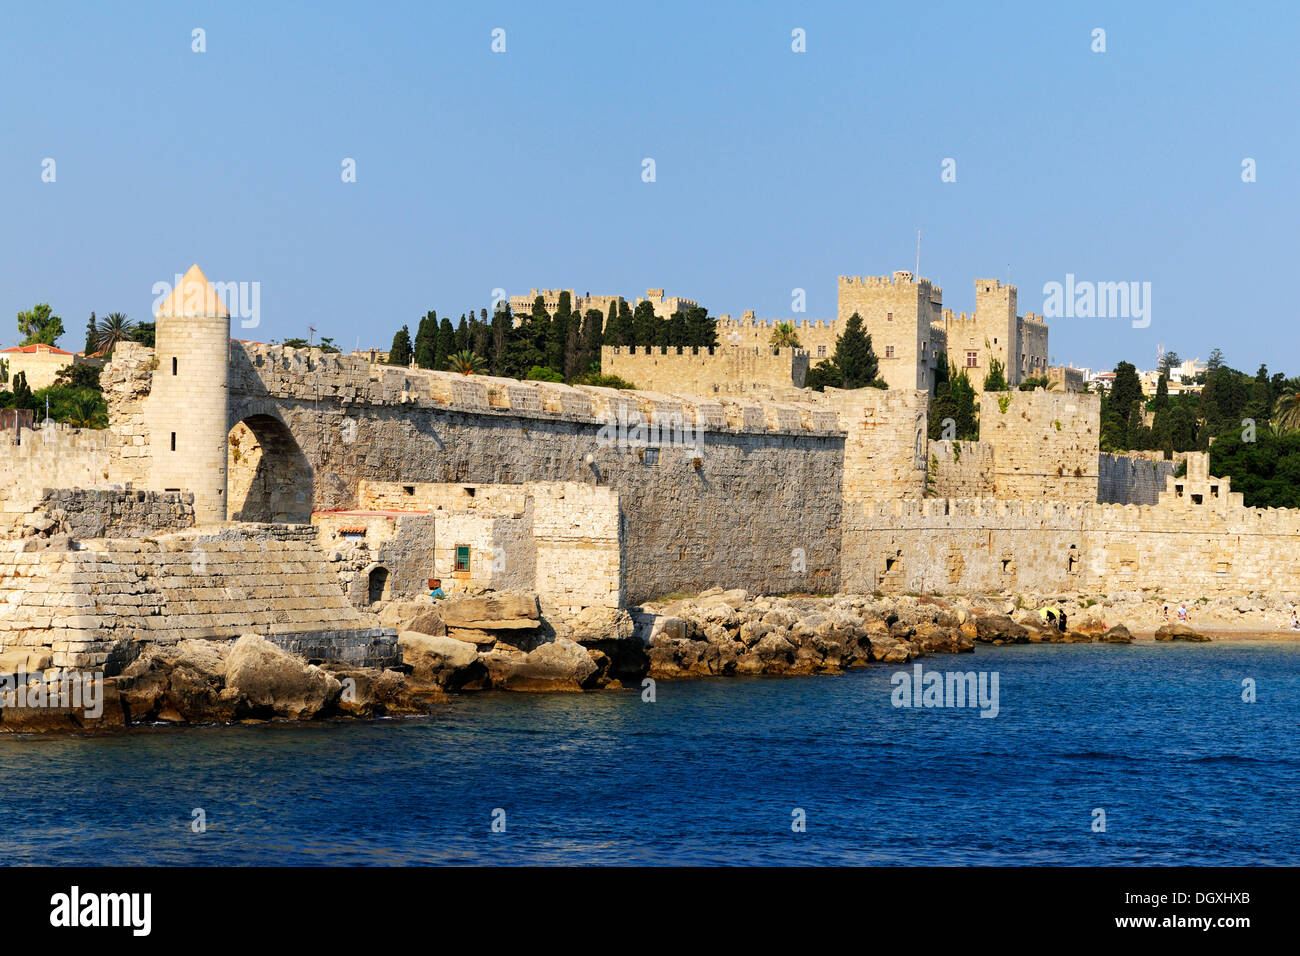 Port of Rhodes Town, Rhodes island, Greece, Europe - Stock Image